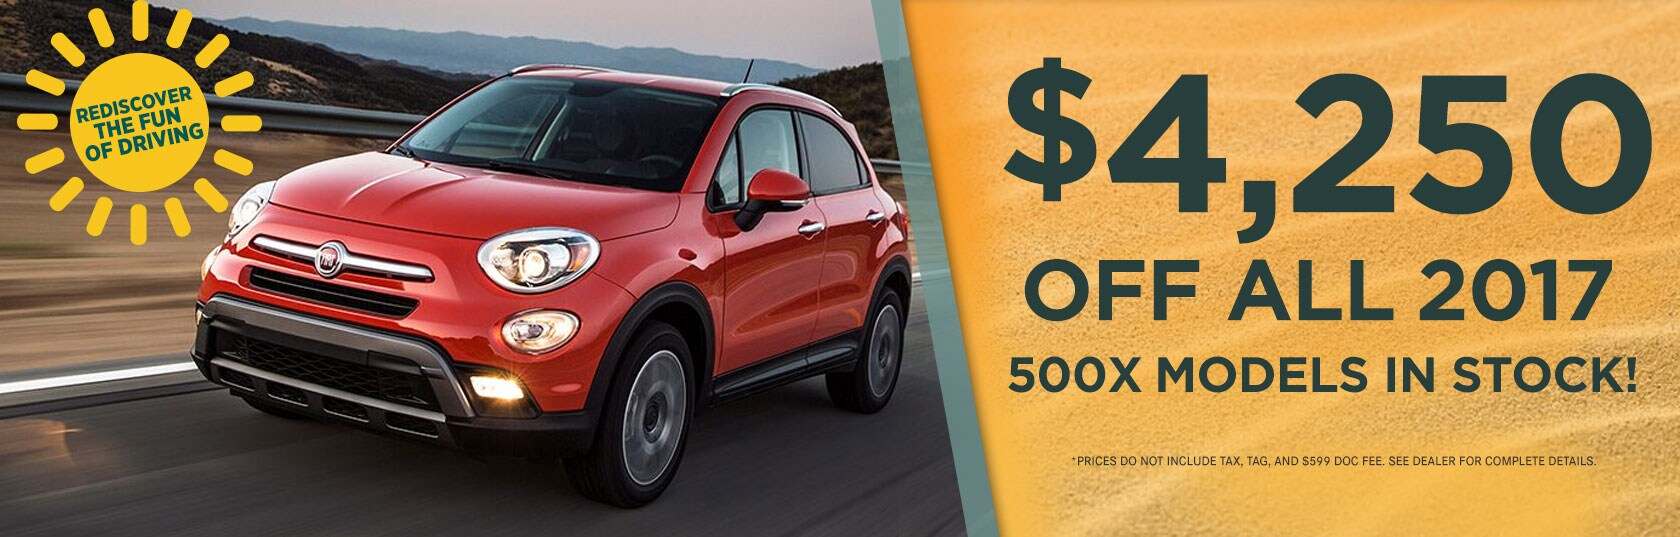 Fiat Dealer Greensboro Nc New And Used Cars Near